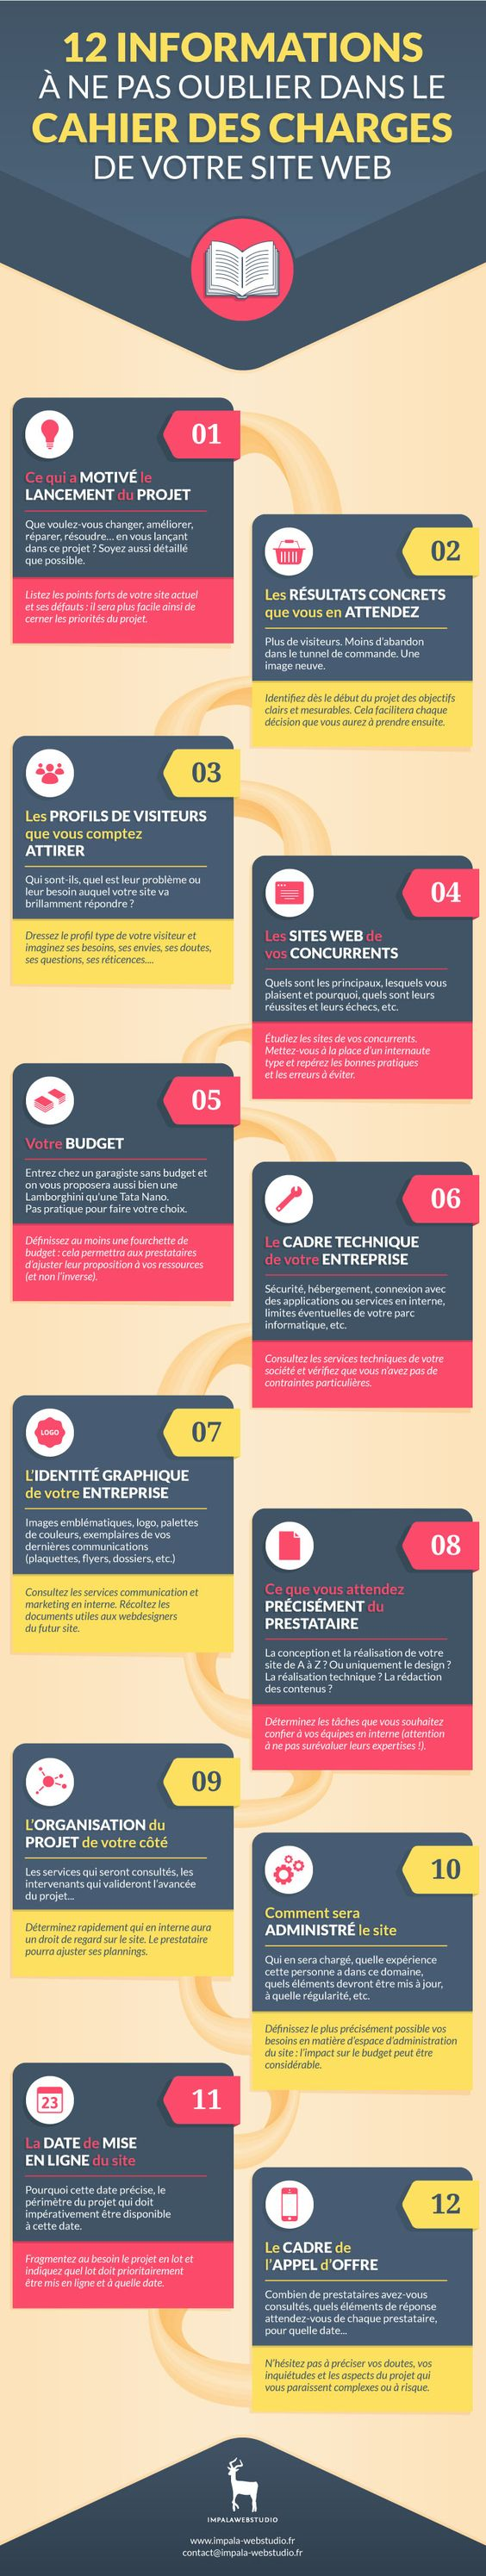 infographie-cahier-des-charges